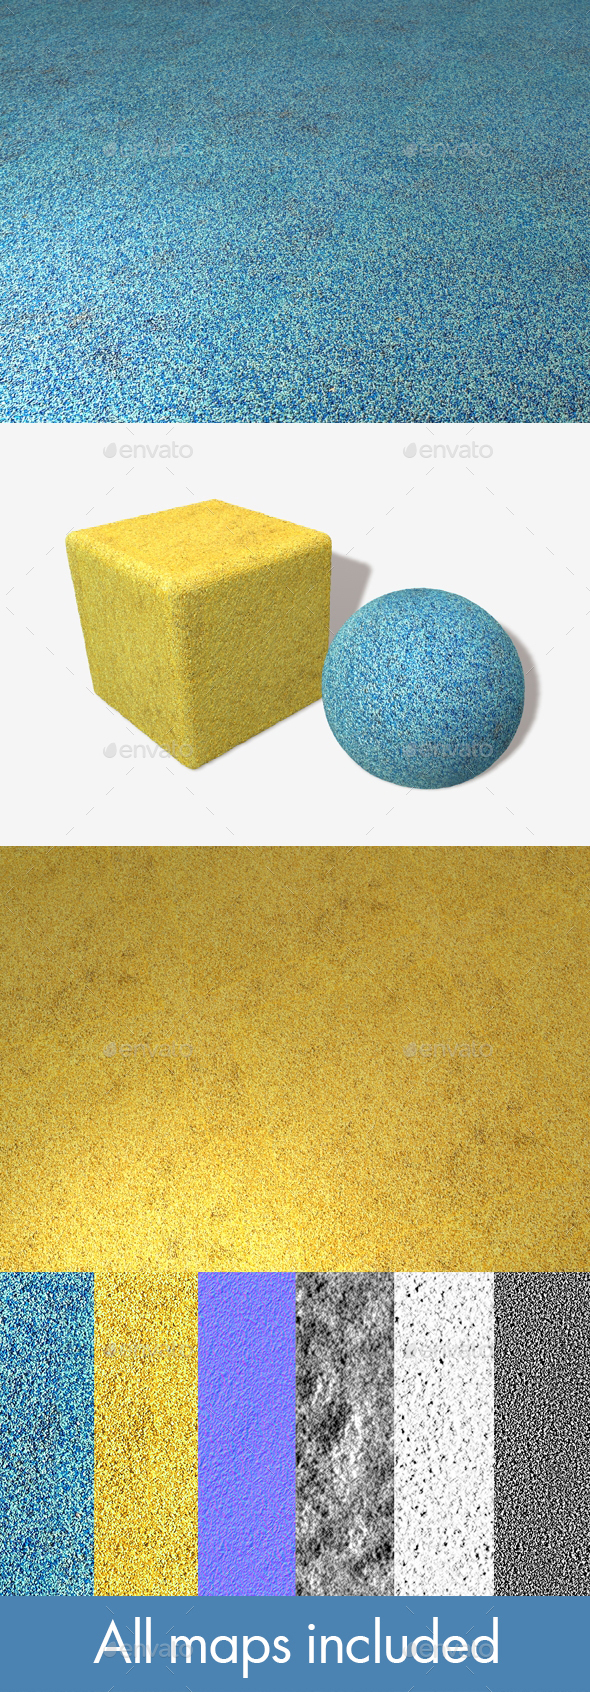 Playground Safety Flooring, Seamless Texture x2 - 3DOcean Item for Sale